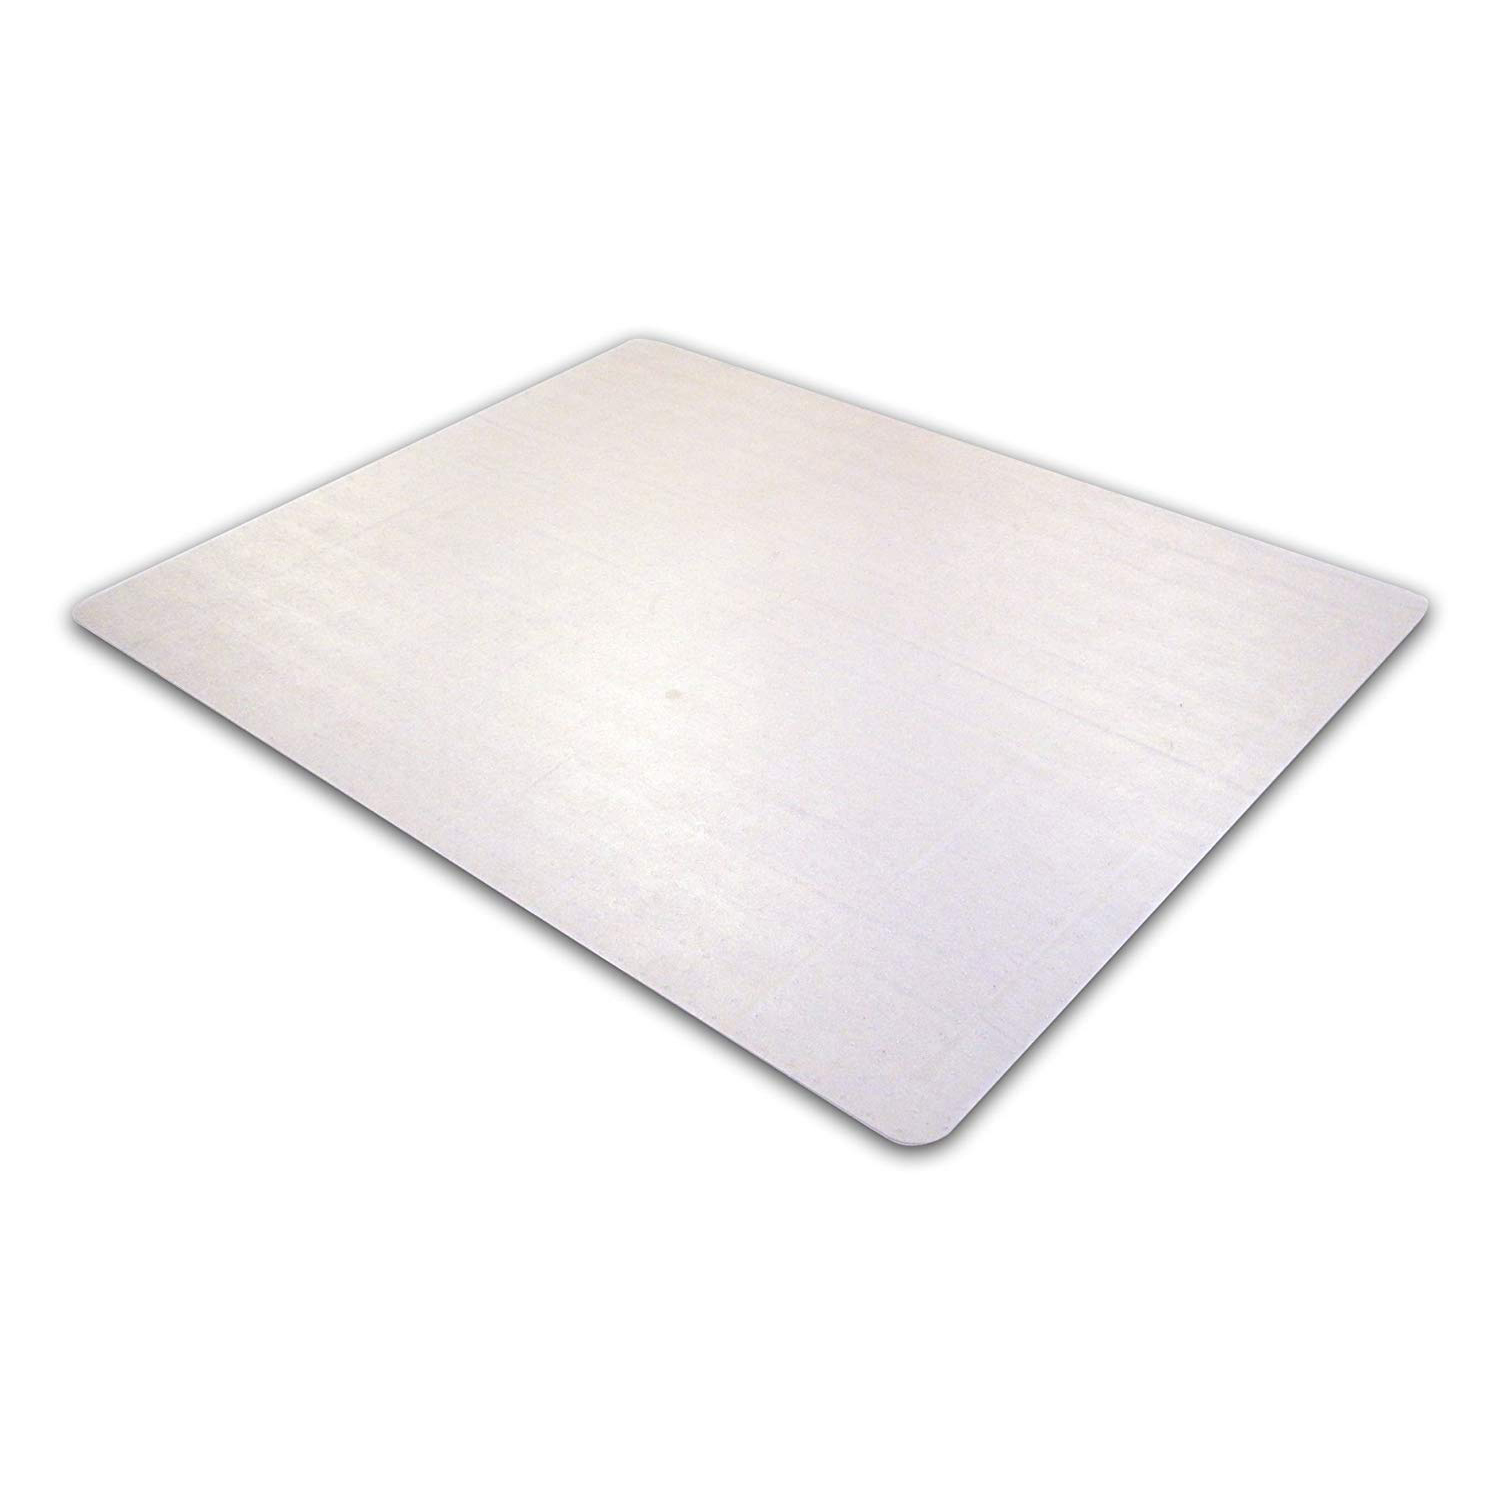 Floortex 1115225EV Studded Rectangular Floor Mat - 120cm x 150cm (pc)